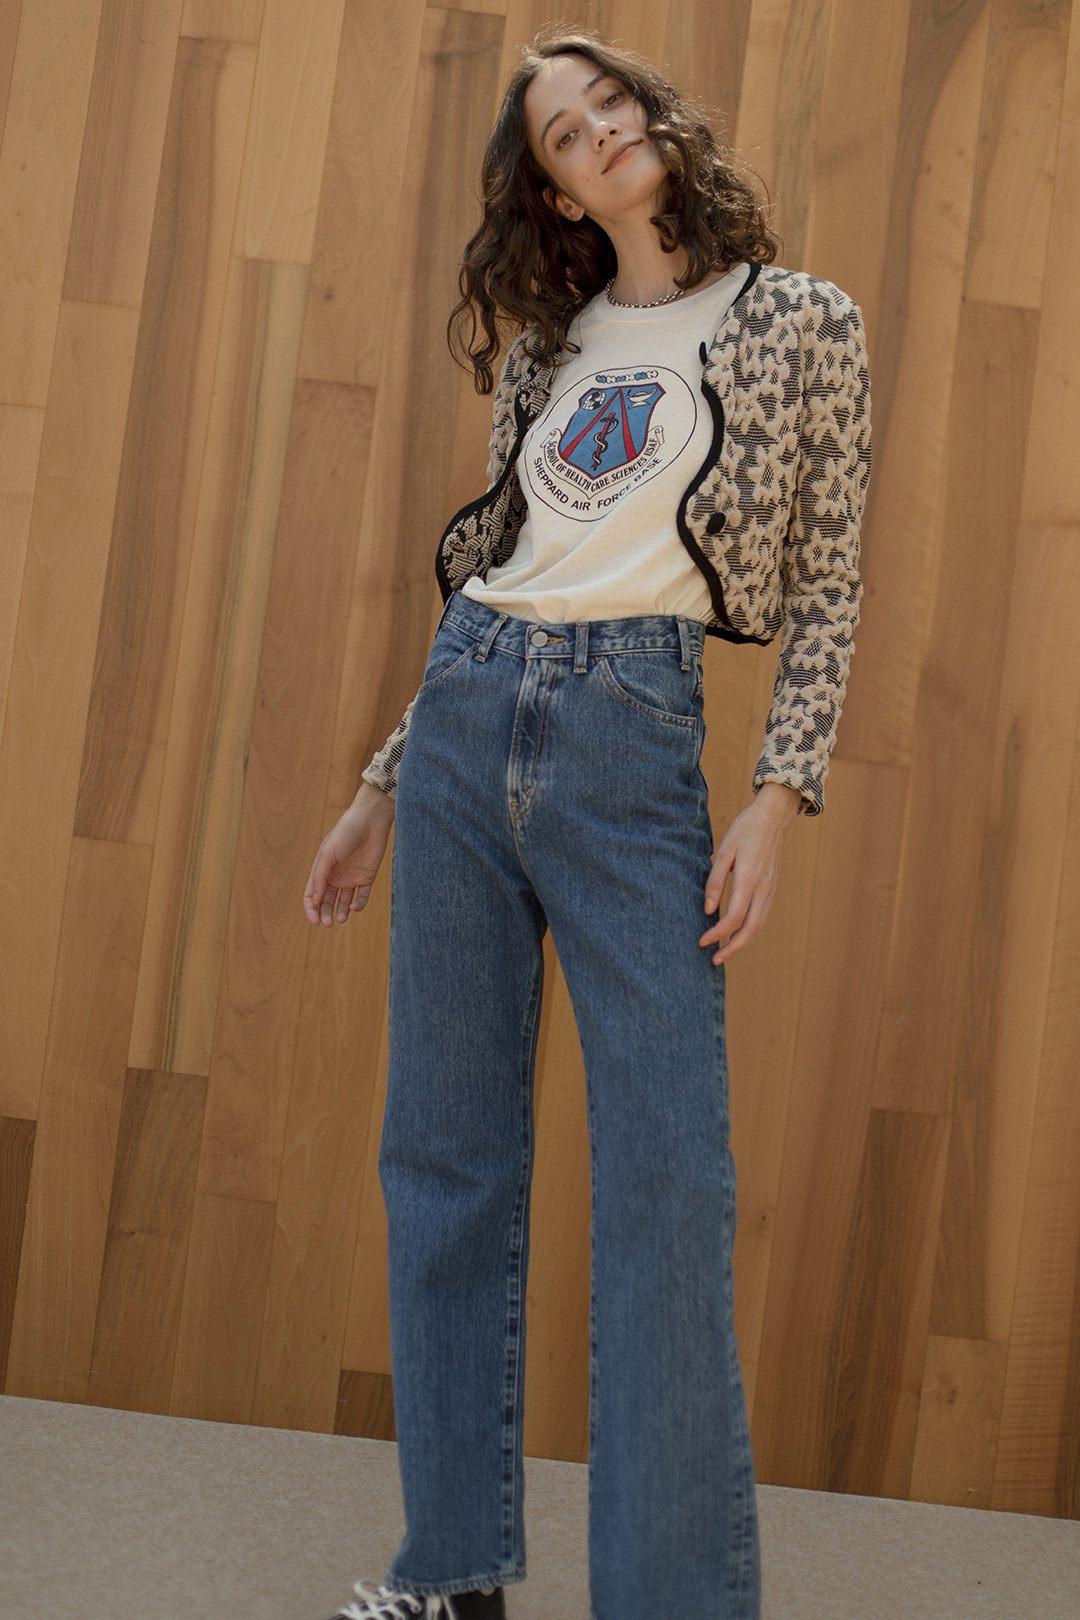 43_1 jacket¥28,600  tee¥14,300  pants¥25,300  necklace¥319,000  shoes¥18,700